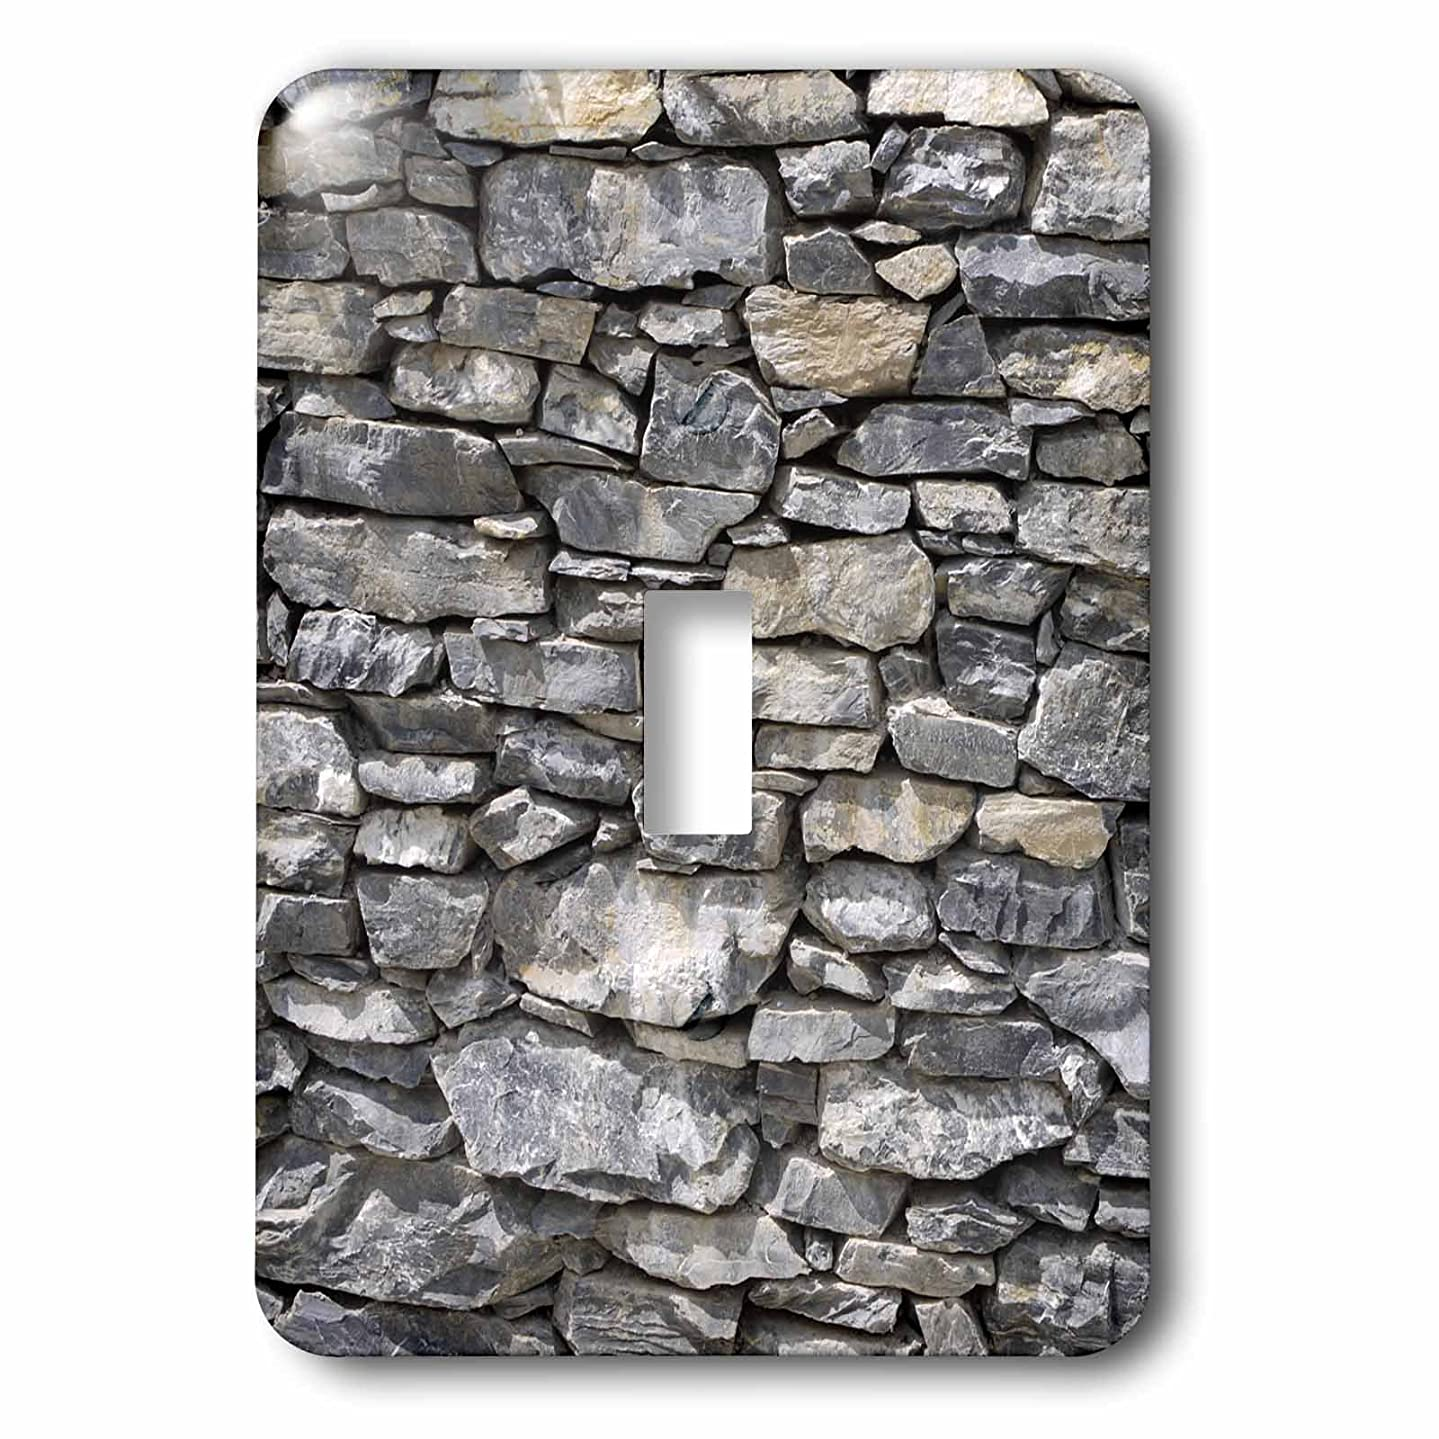 3dRose lsp_280421_1 A A Rustic Gray Stone Wall With an Antique Look Toggle Switch